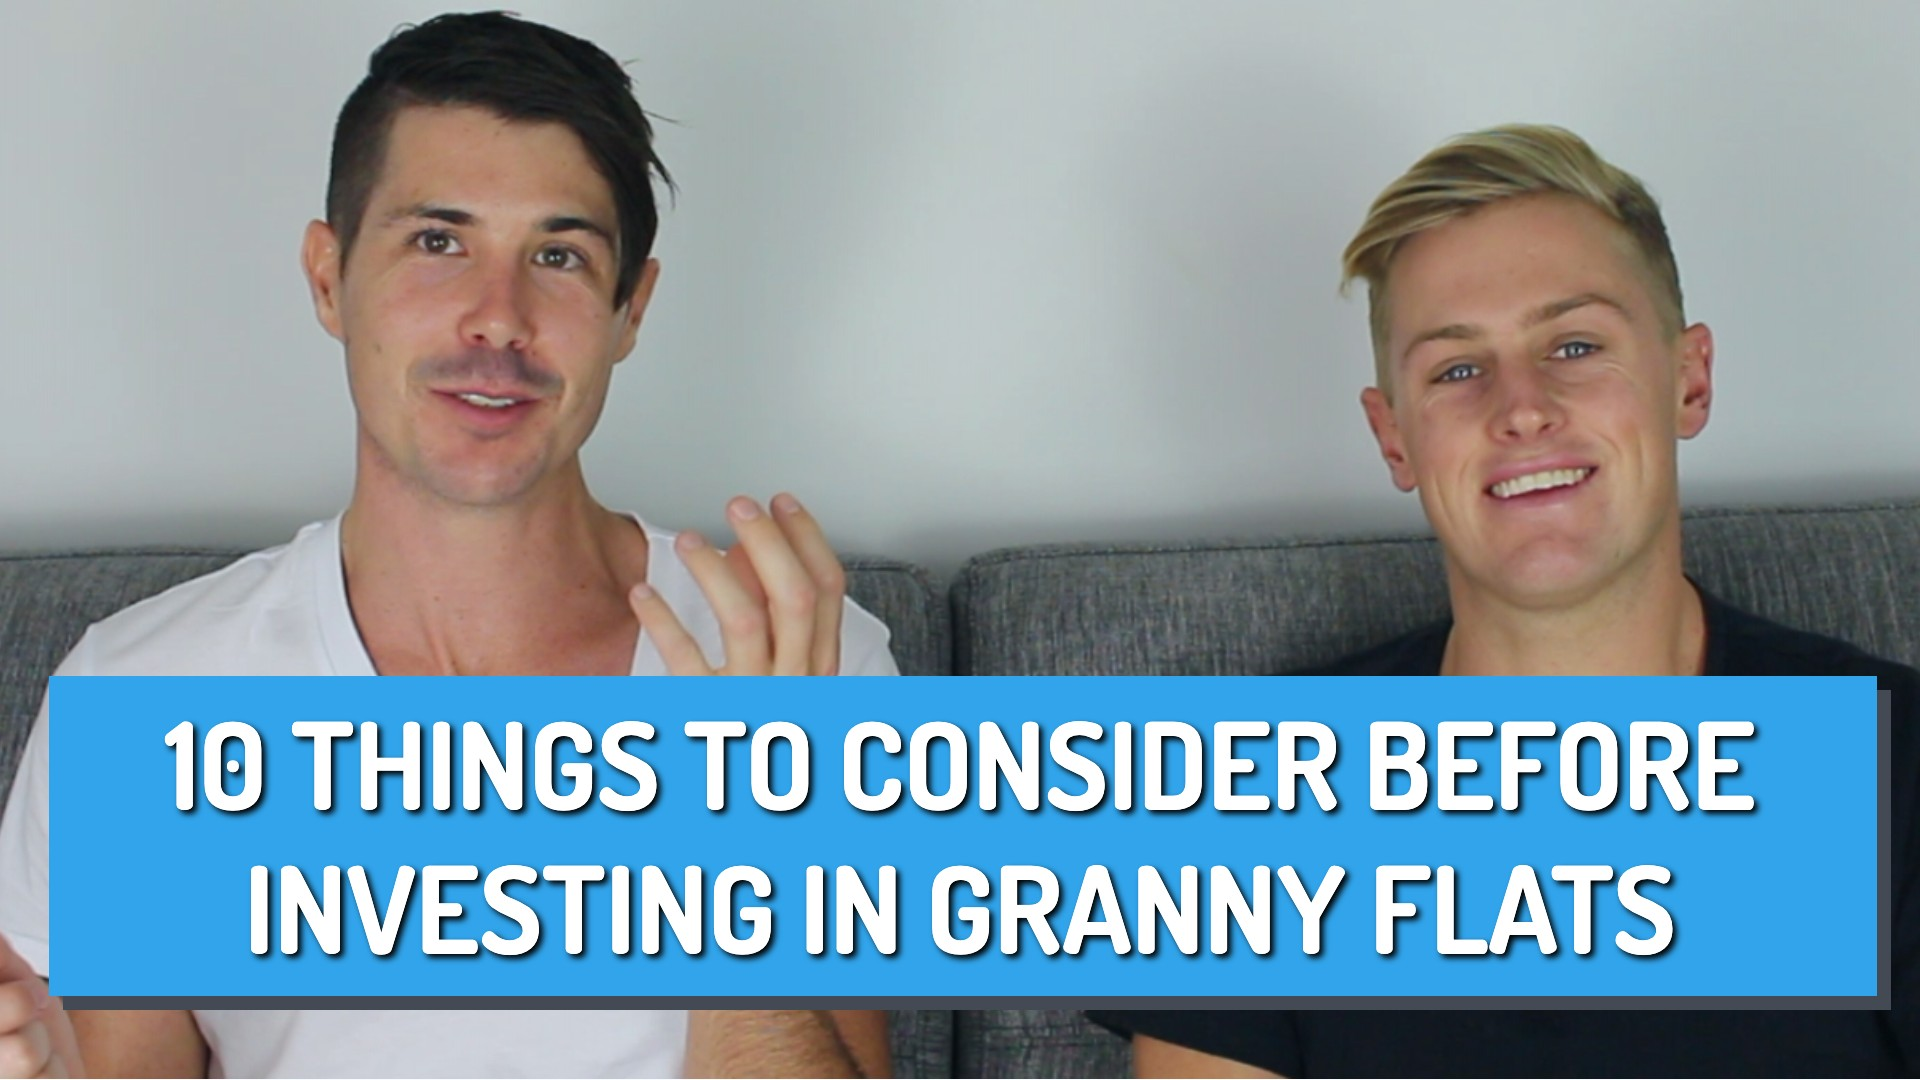 10 Things To Consider Before Investing in Granny Flats